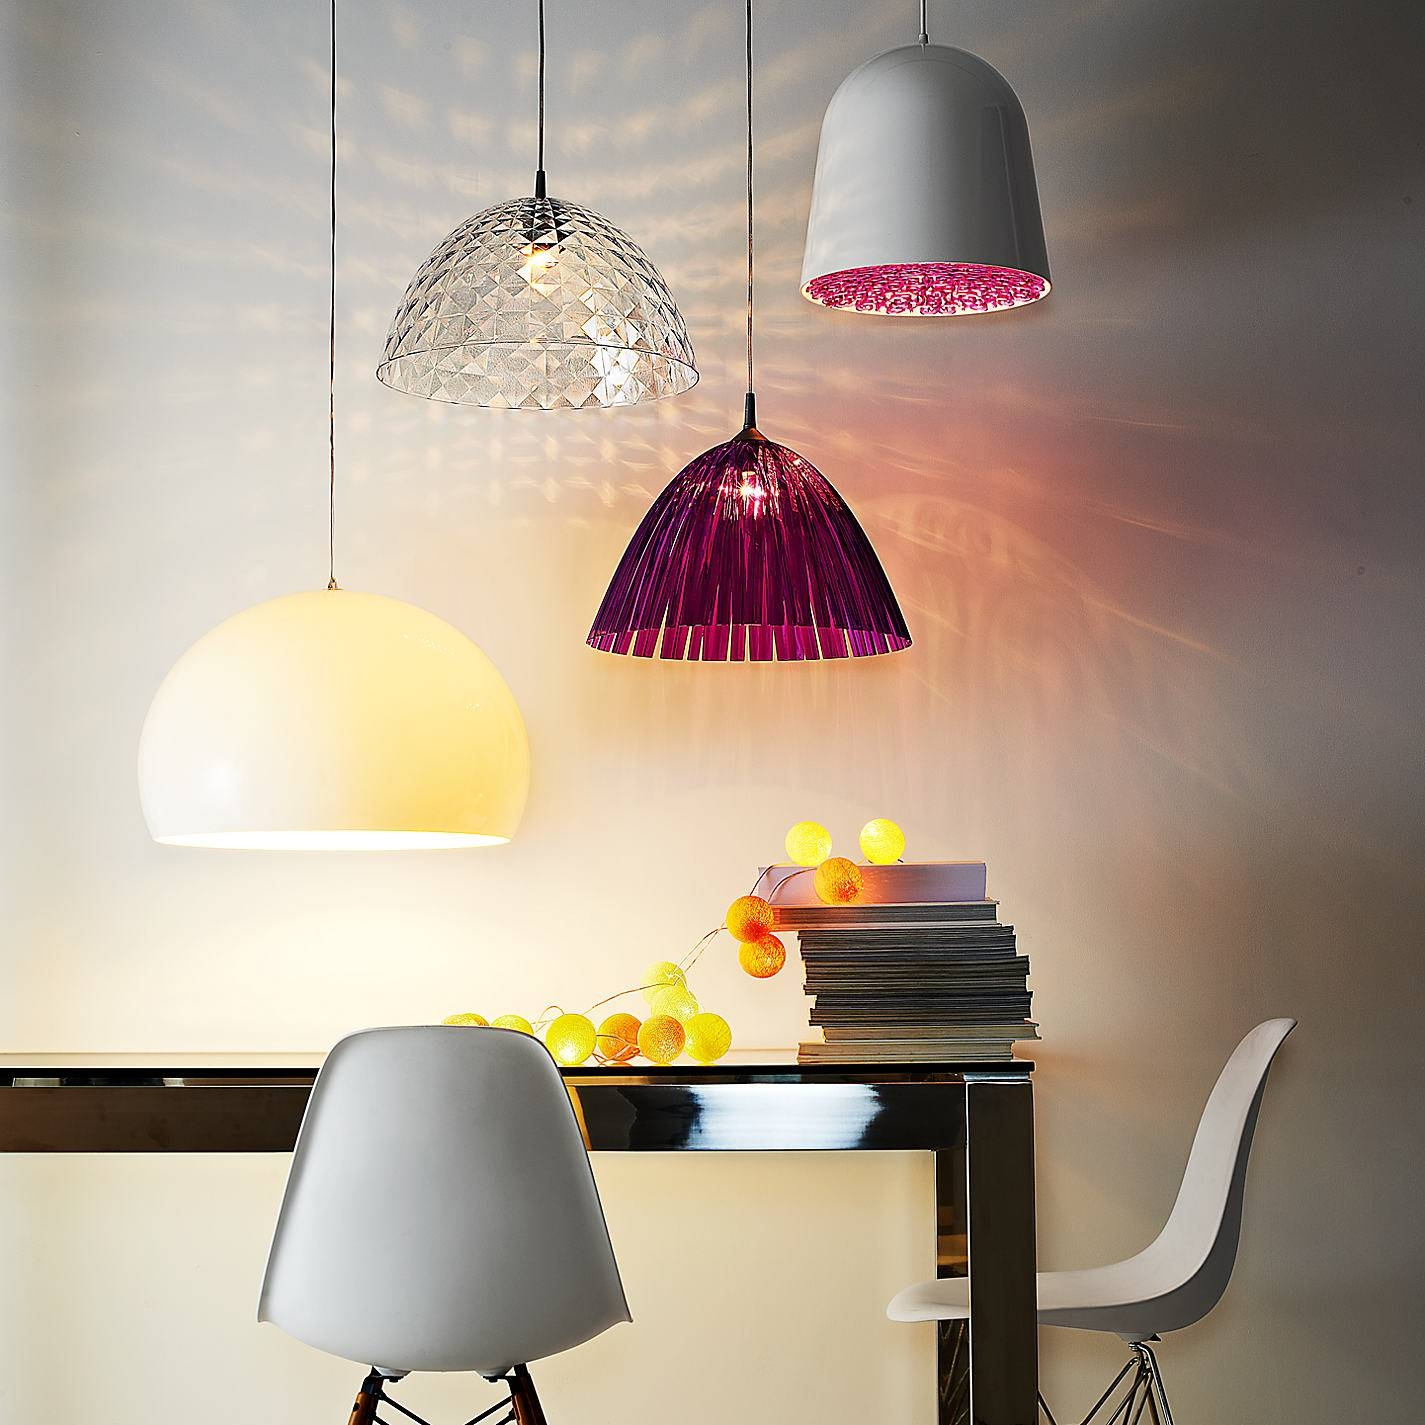 John Lewis Pendant Lighting. Cool Buy Lamps Online Arnottsie With with regard to John Lewis Lighting Pendants (Image 8 of 15)